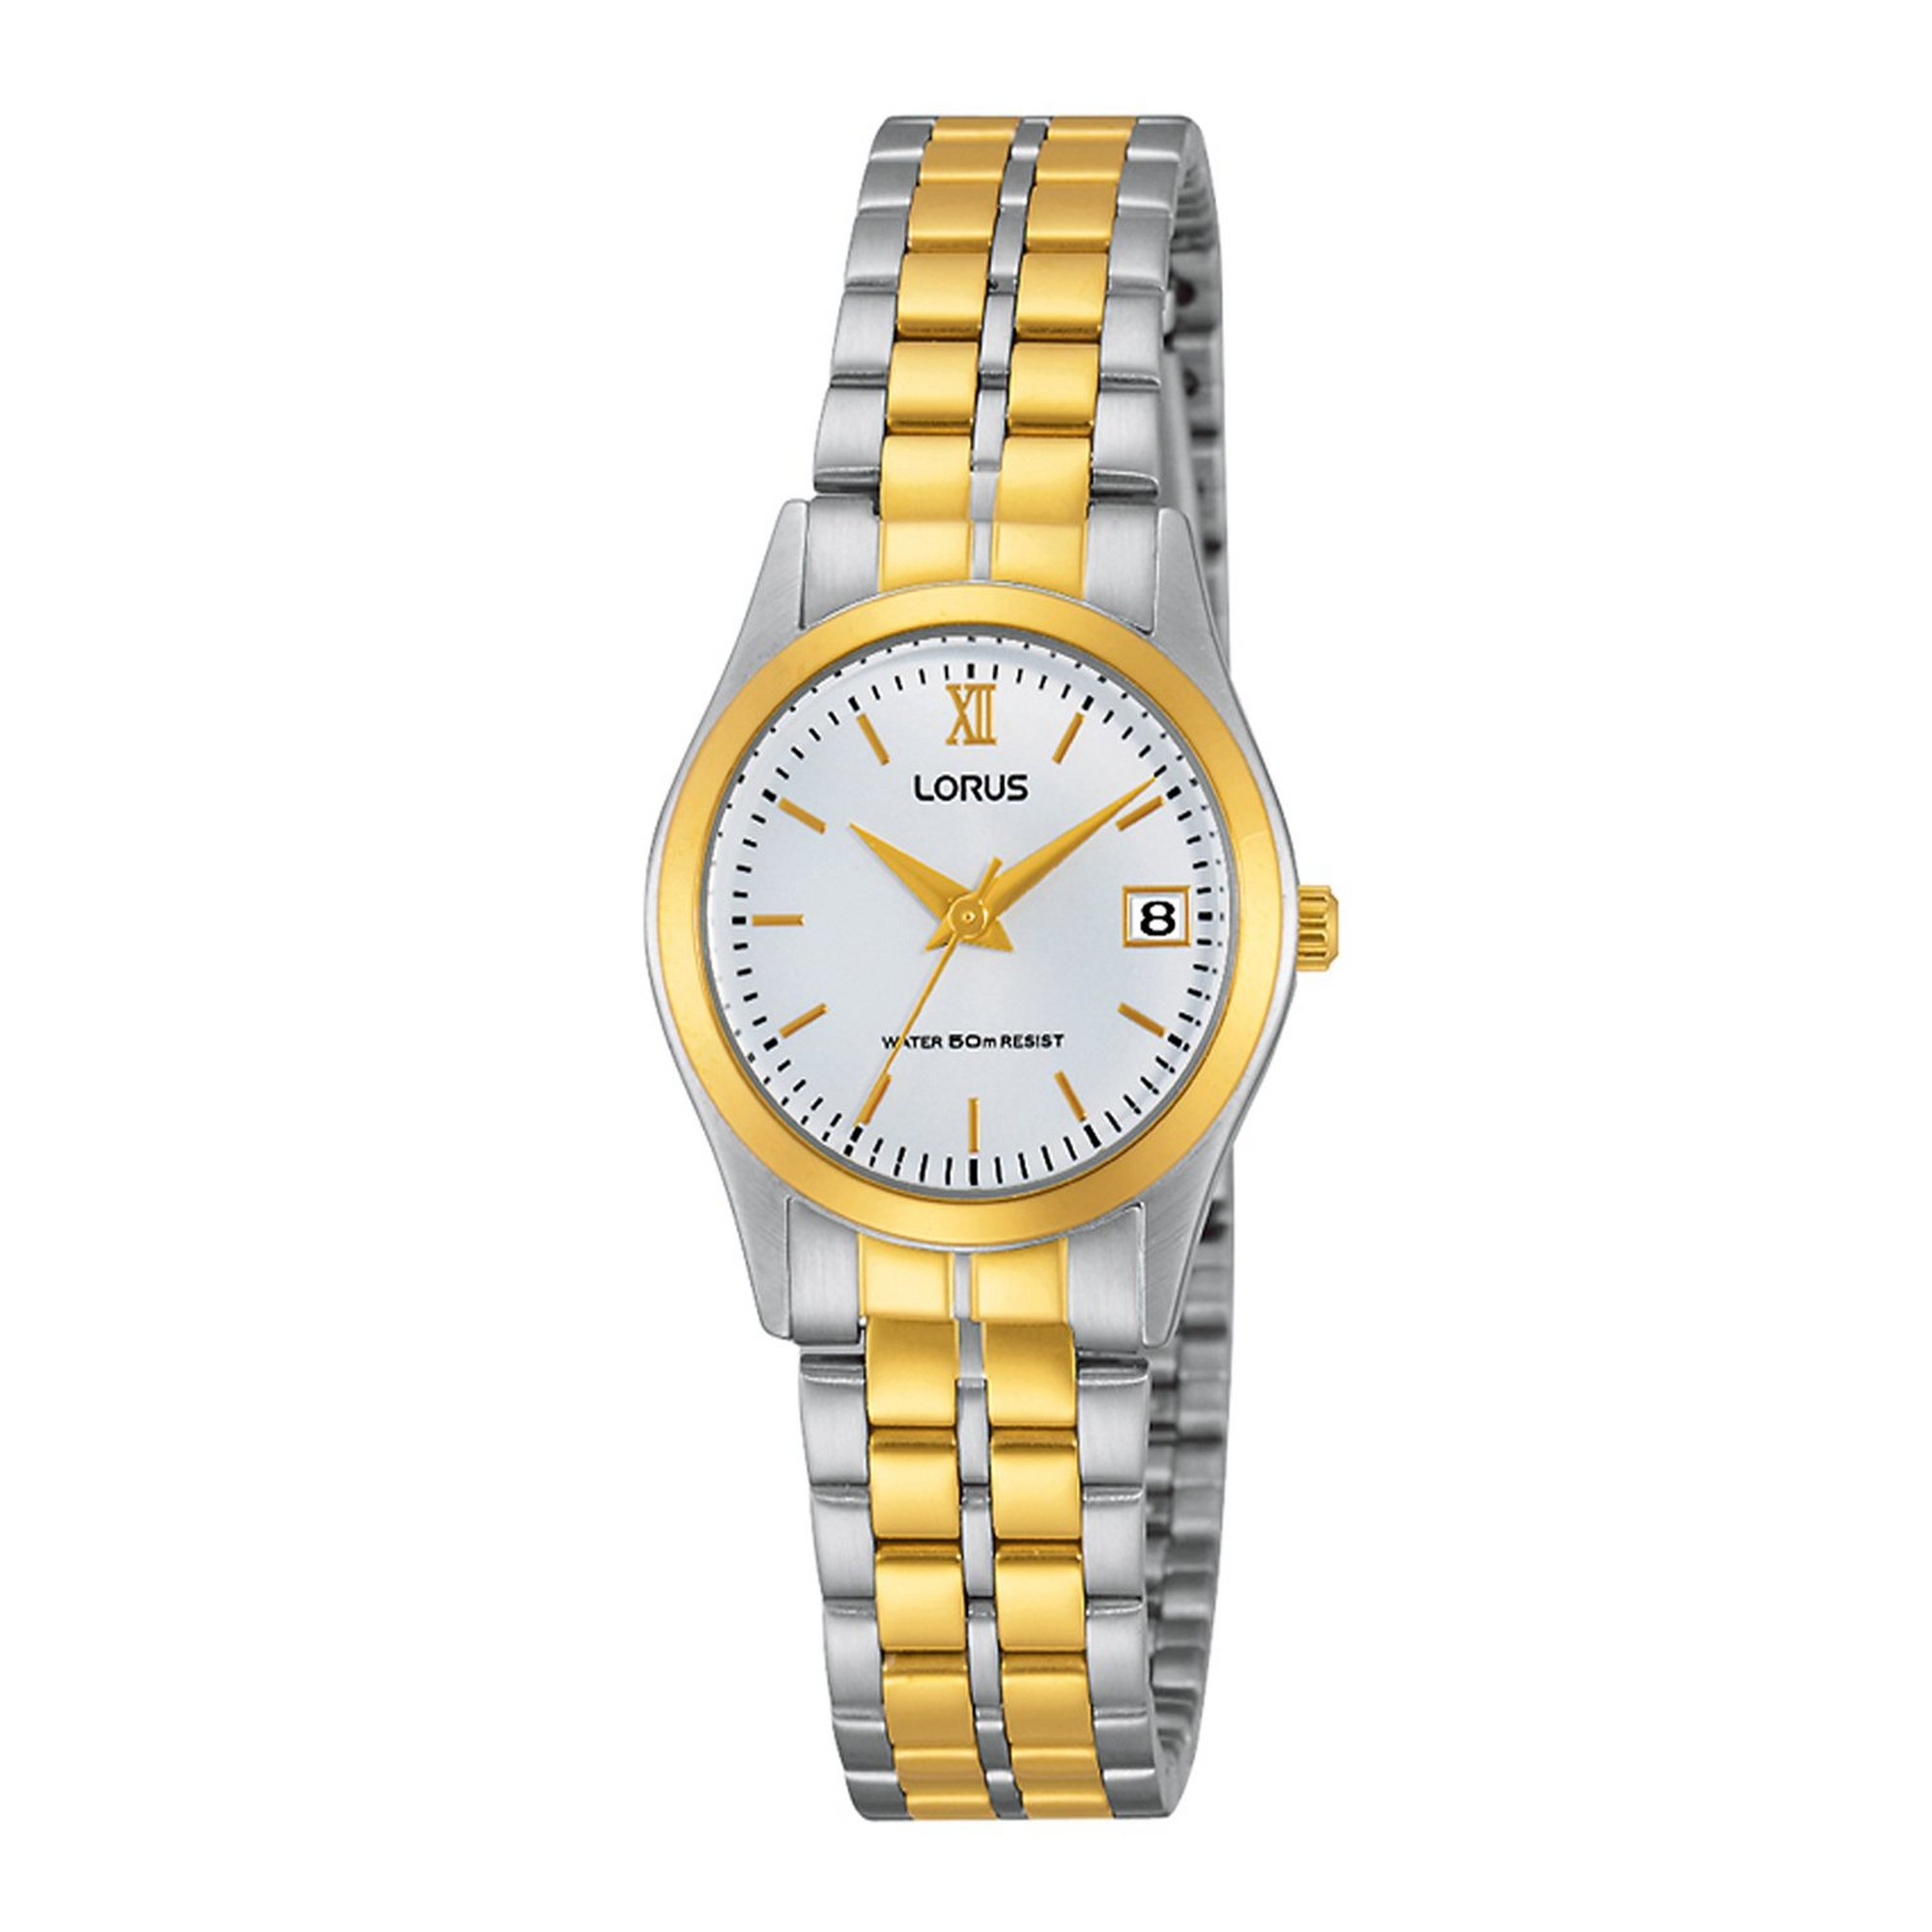 Image of Lorus Classic Two Tone Bracelet Watch with Gold Roman Numerals